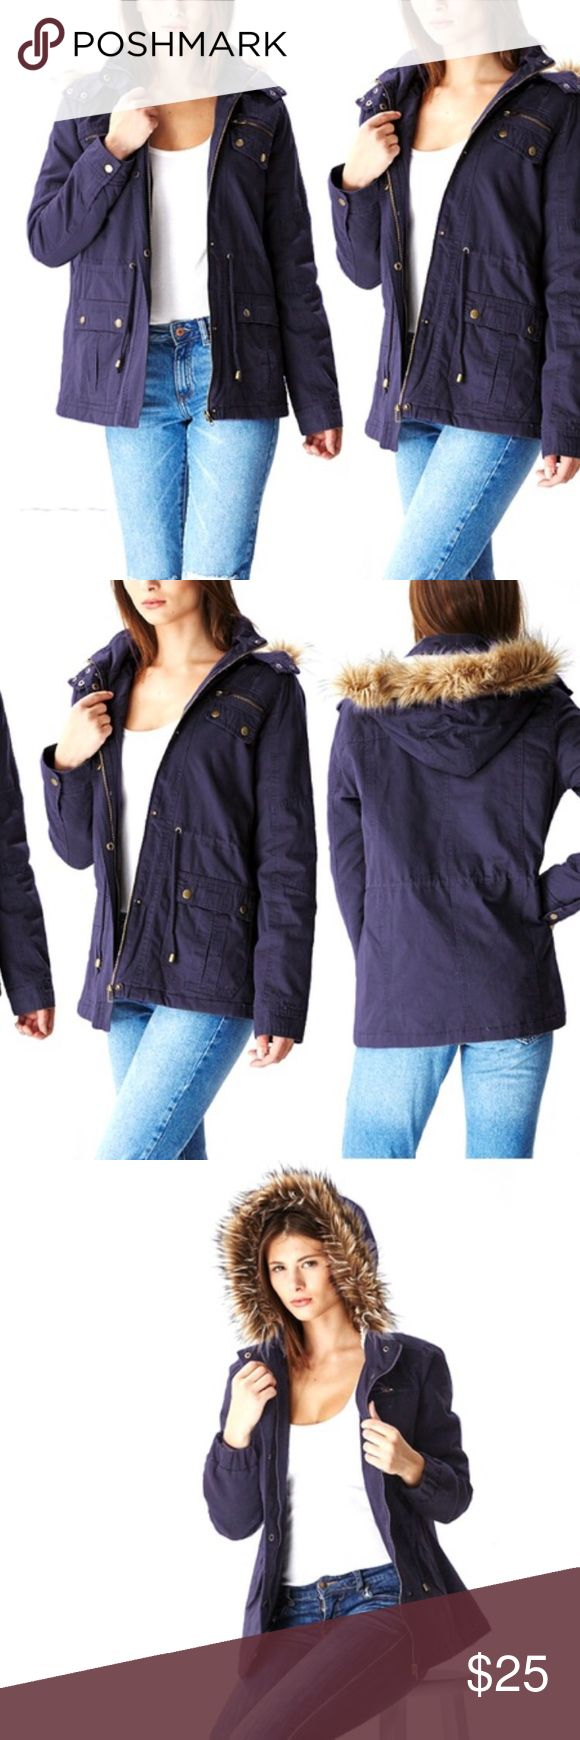 Short Navy Parka Fur-trimmed hood and zipper closure along with buttons and inner lining help make this cute jacket warmth retaining. Never worn, new with tags. Ideal for lightly chilly weather, multiple pockets, 100% cotton. Machine washable. Runs small, fits more like a large. Glamsia Jackets & Coats Utility Jackets